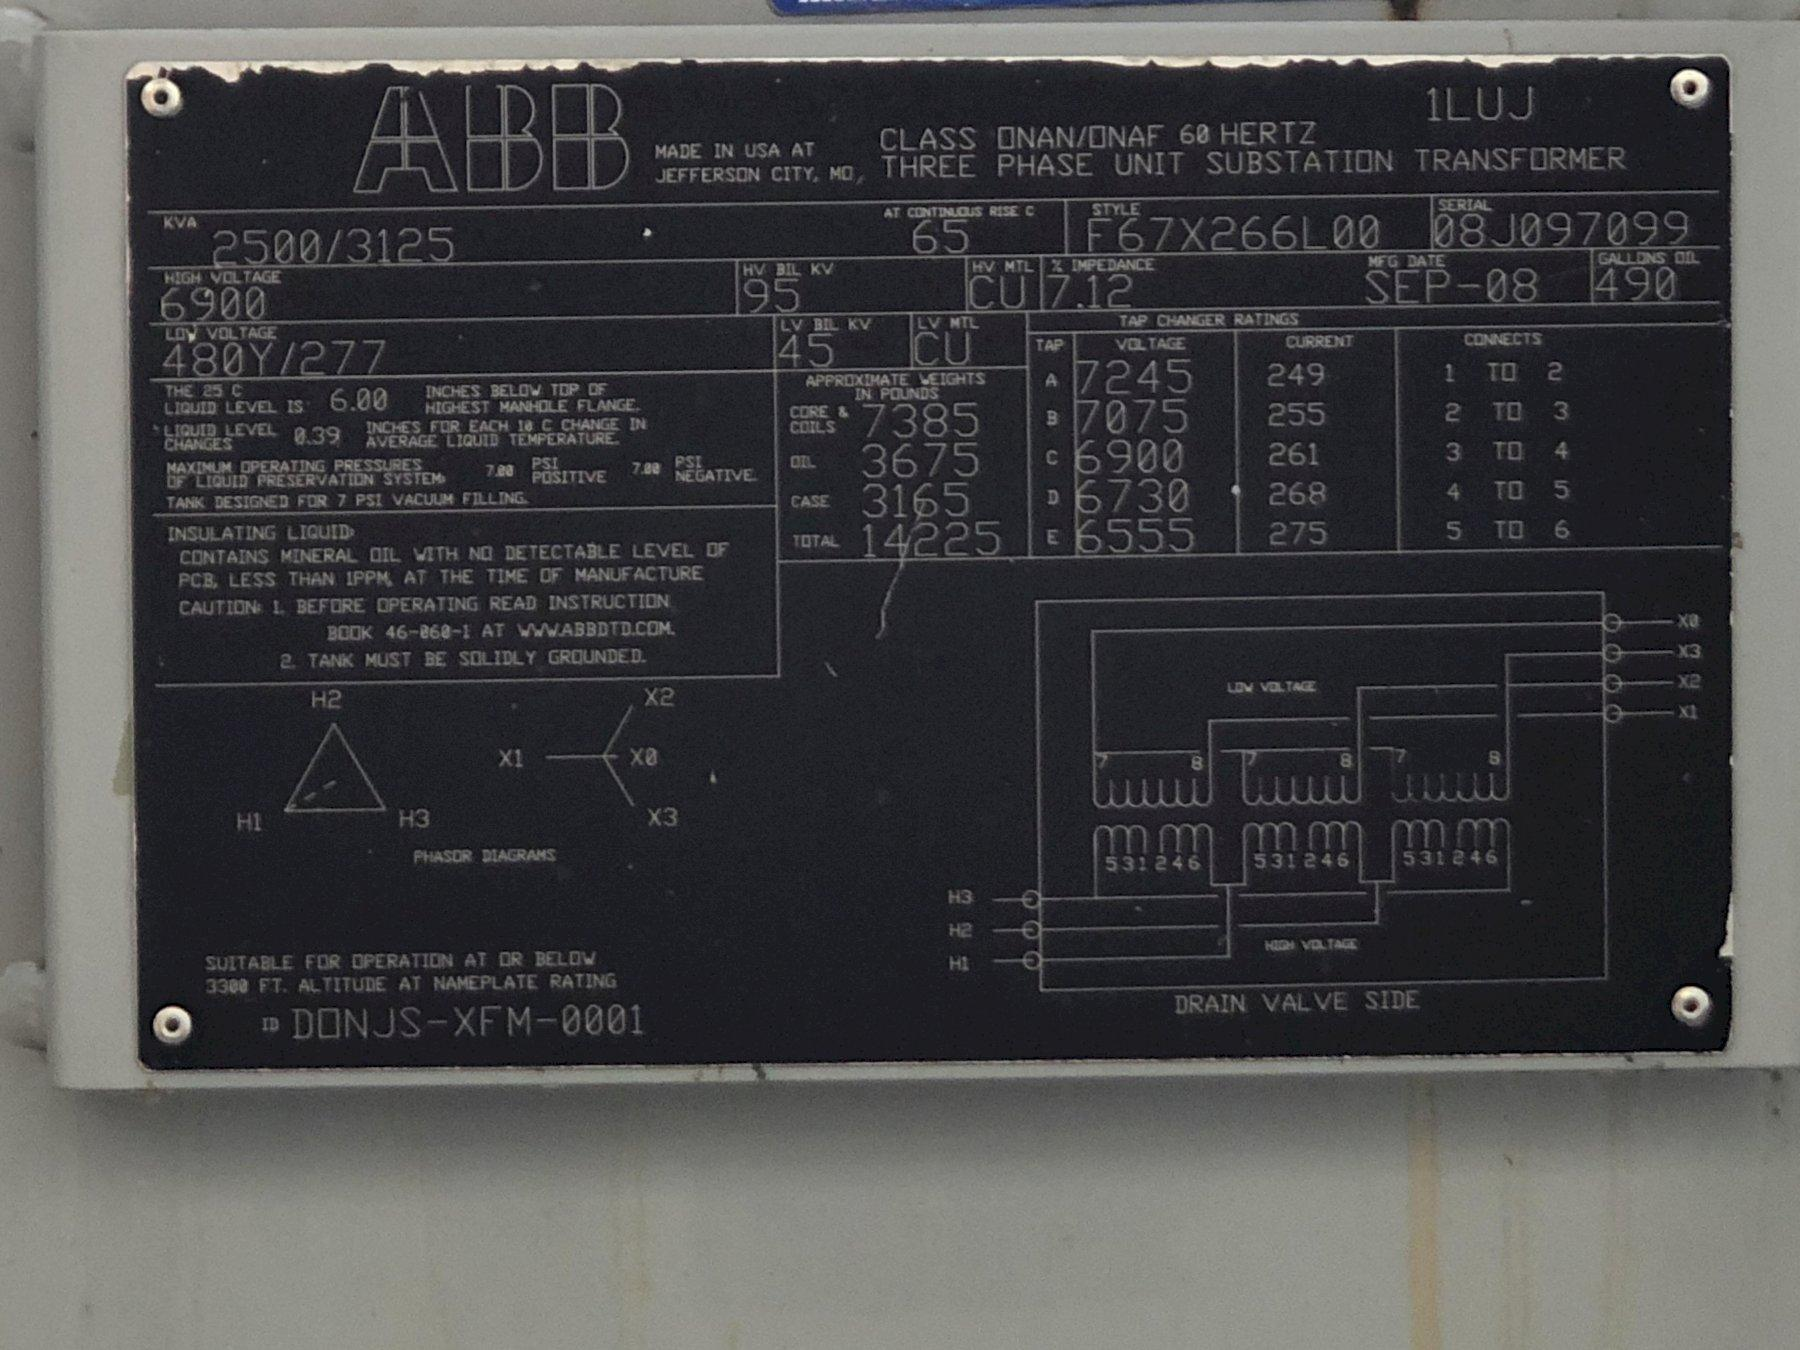 #1 2008 absorb transformer ABB 2500/3125 kva s/n 08j097099 rated at 6900 primary volts with 5 taps, 480Y/277 low volts